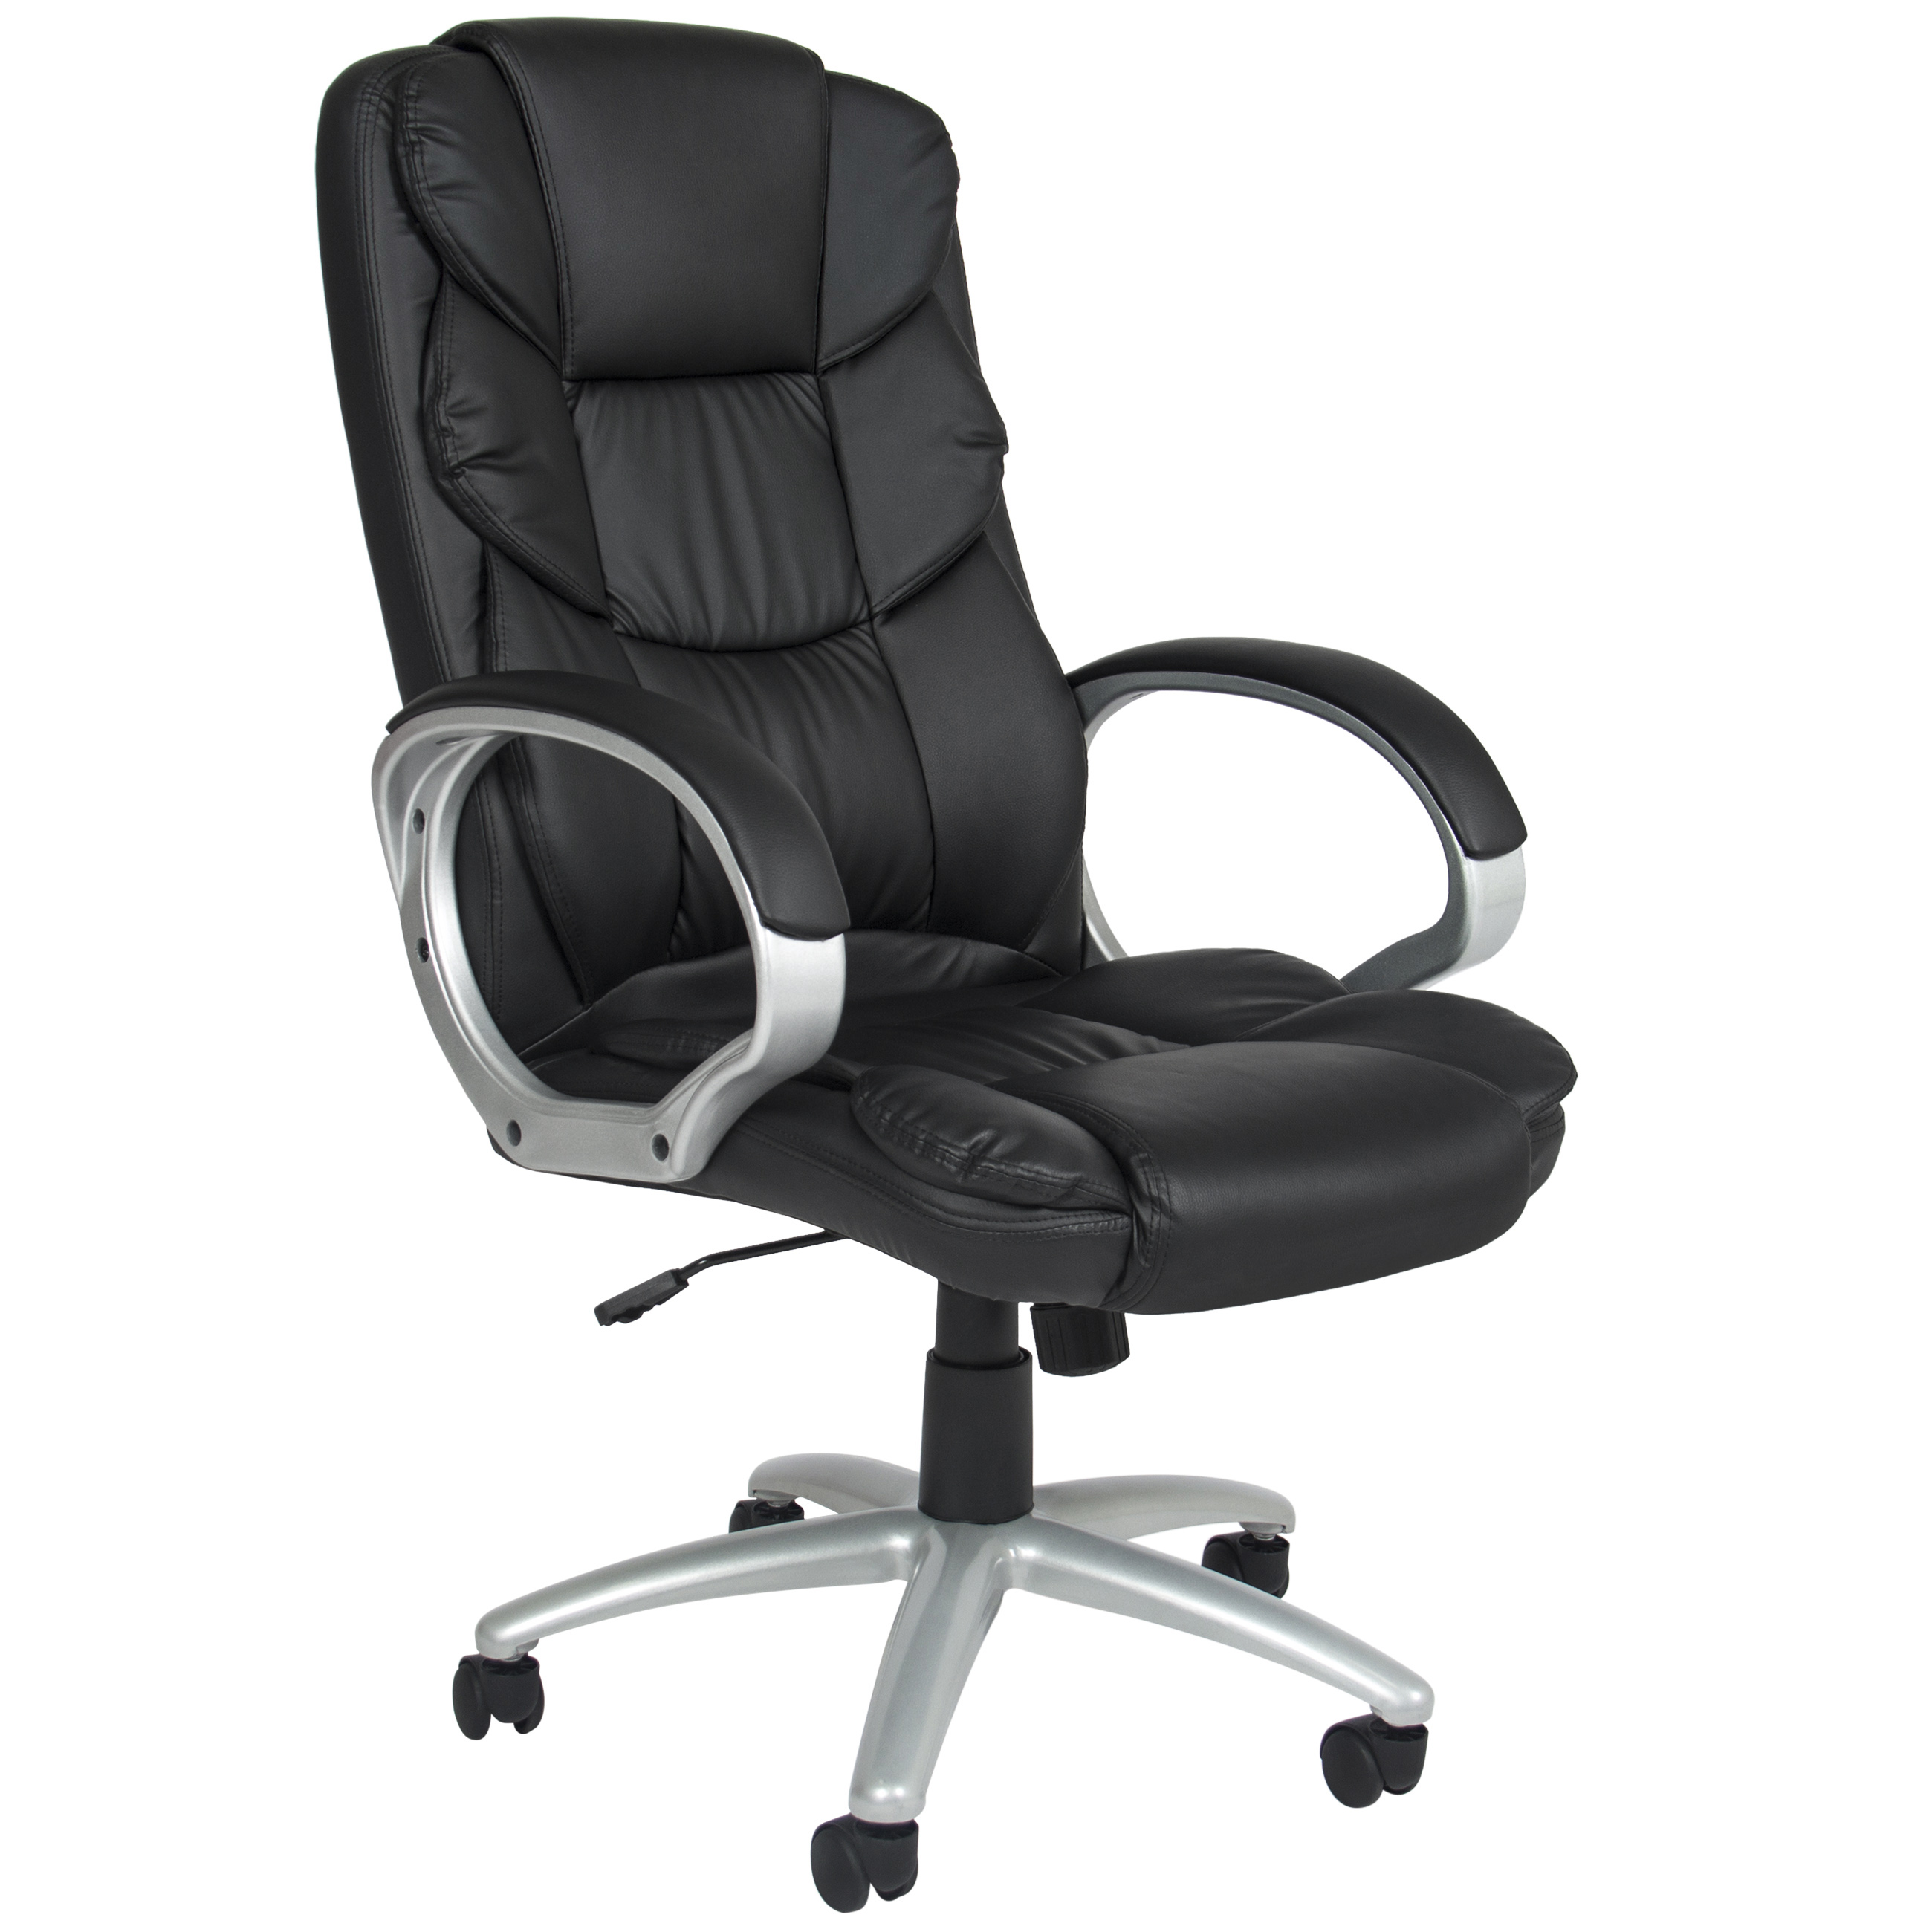 Desk Chair High Back - Best choice products ergonomic pu leather high back office chair black walmart com